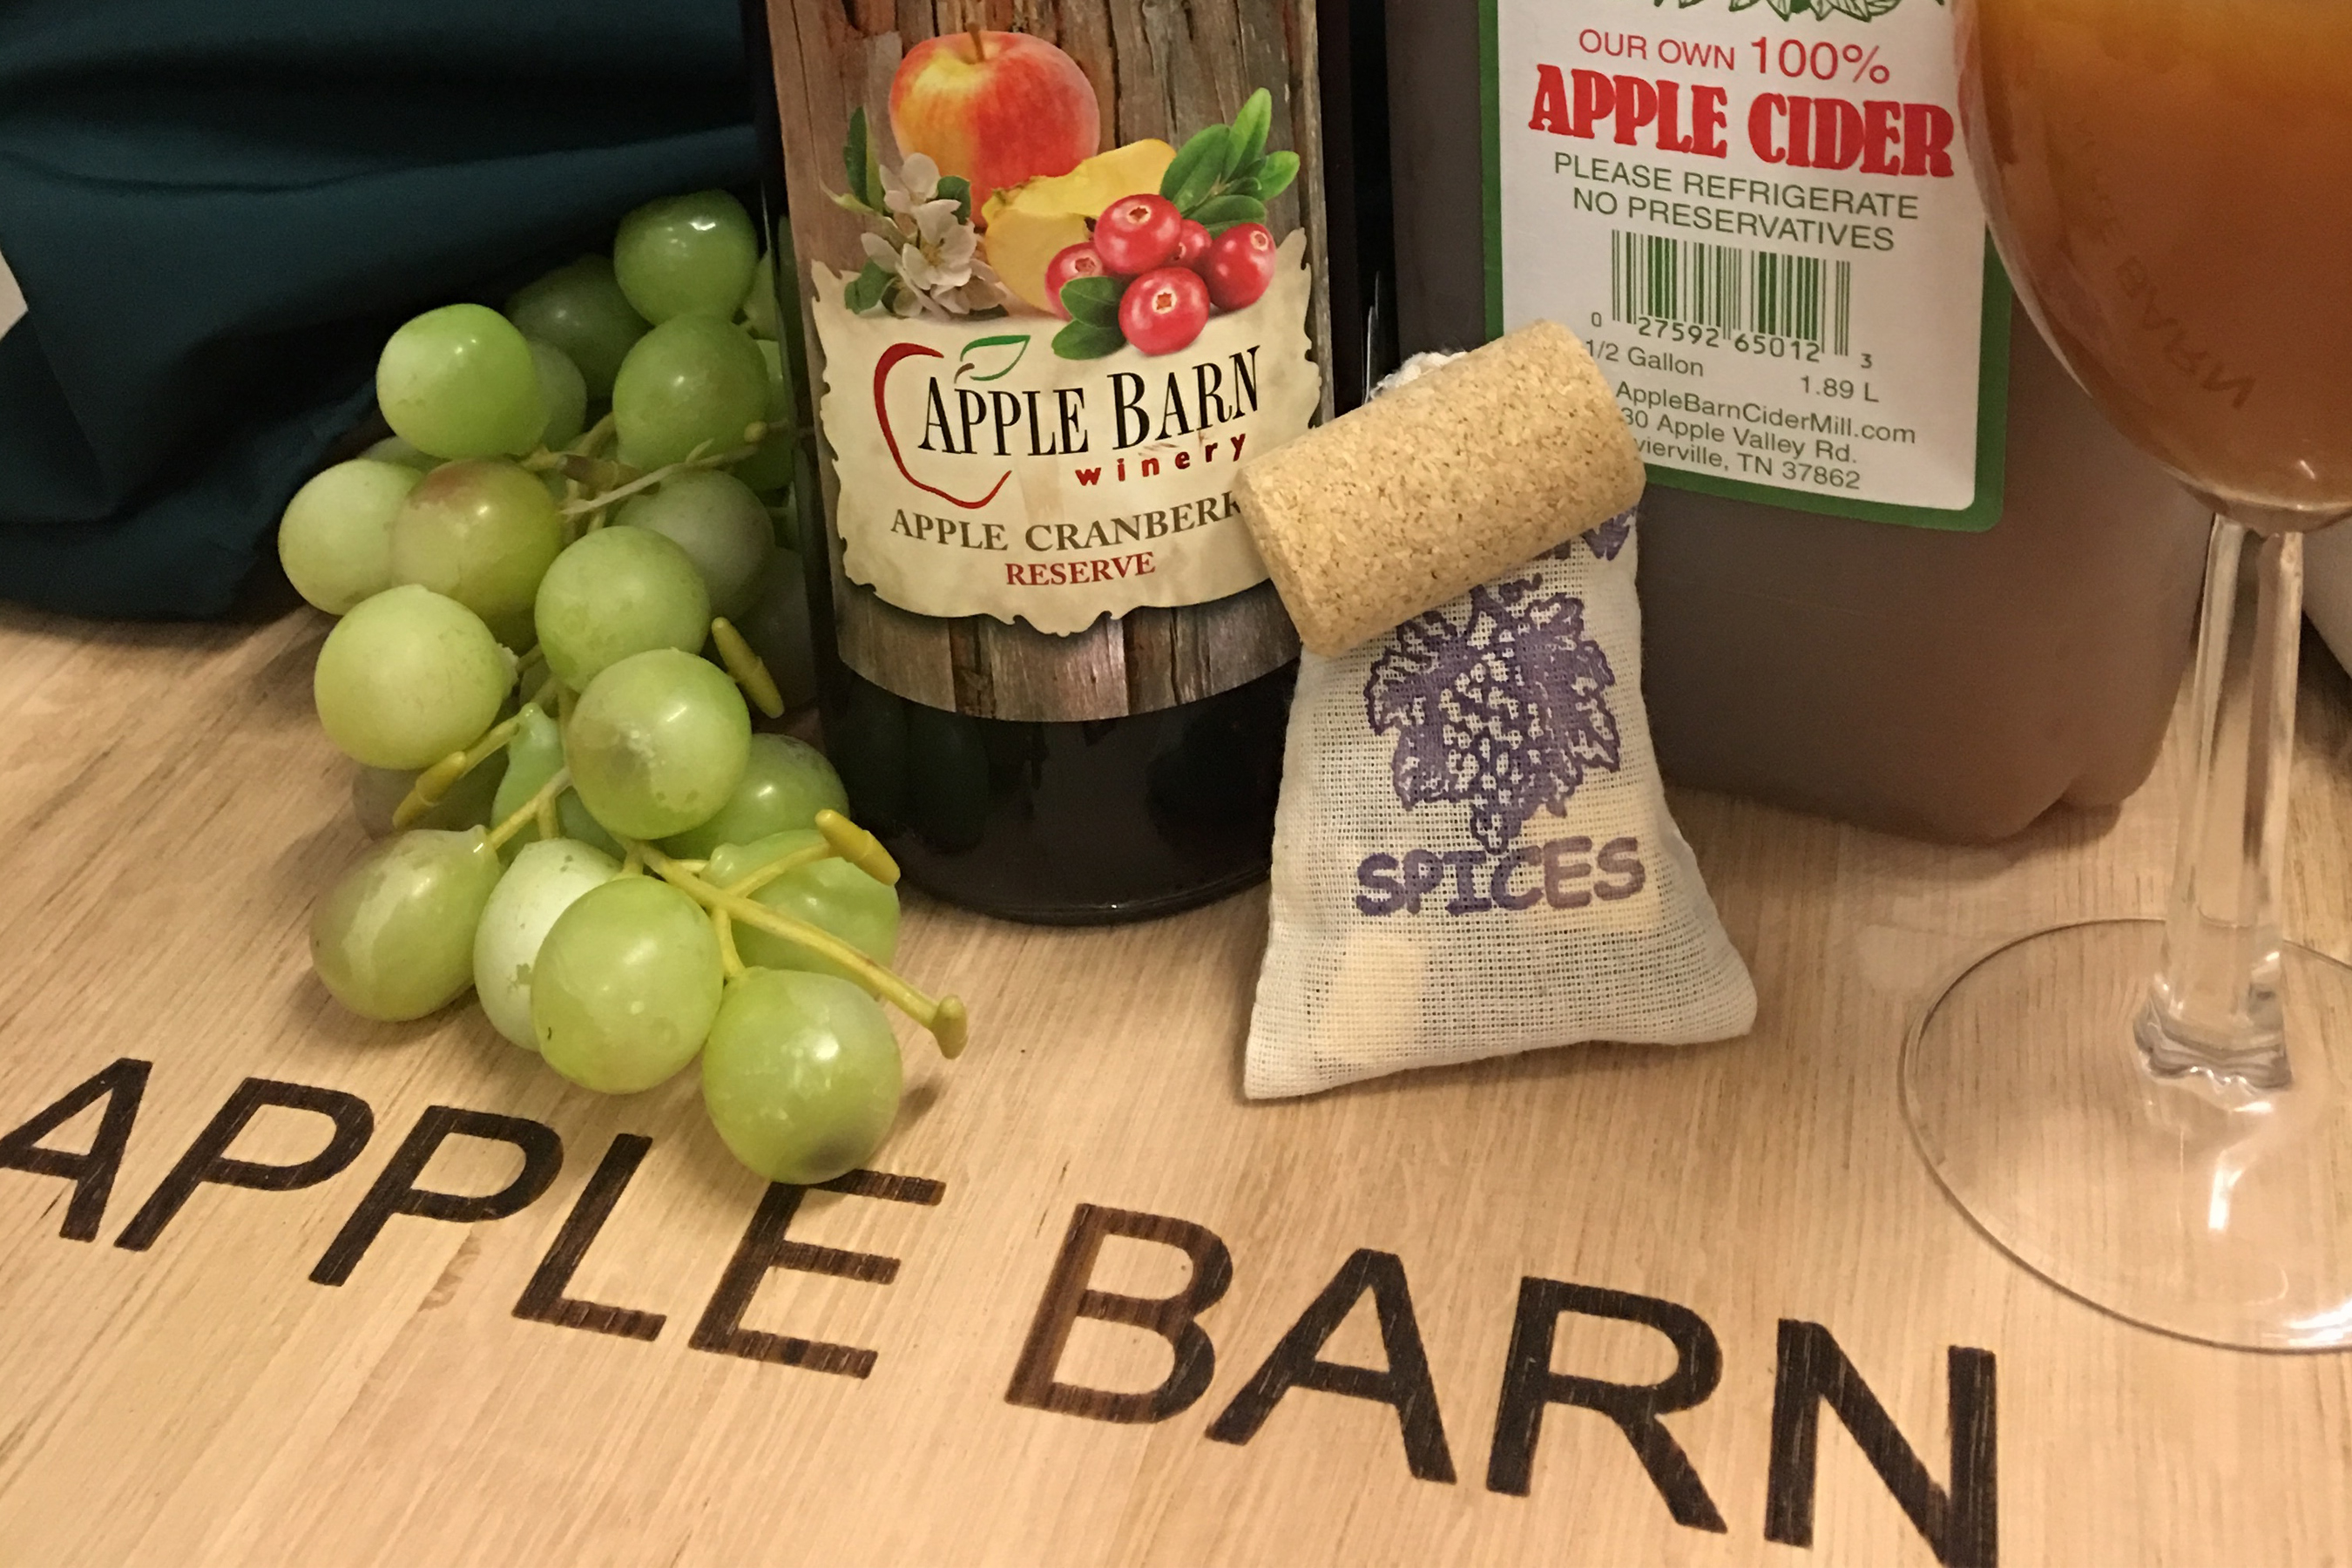 Apple Barn Winery's Hot Spiced Cider